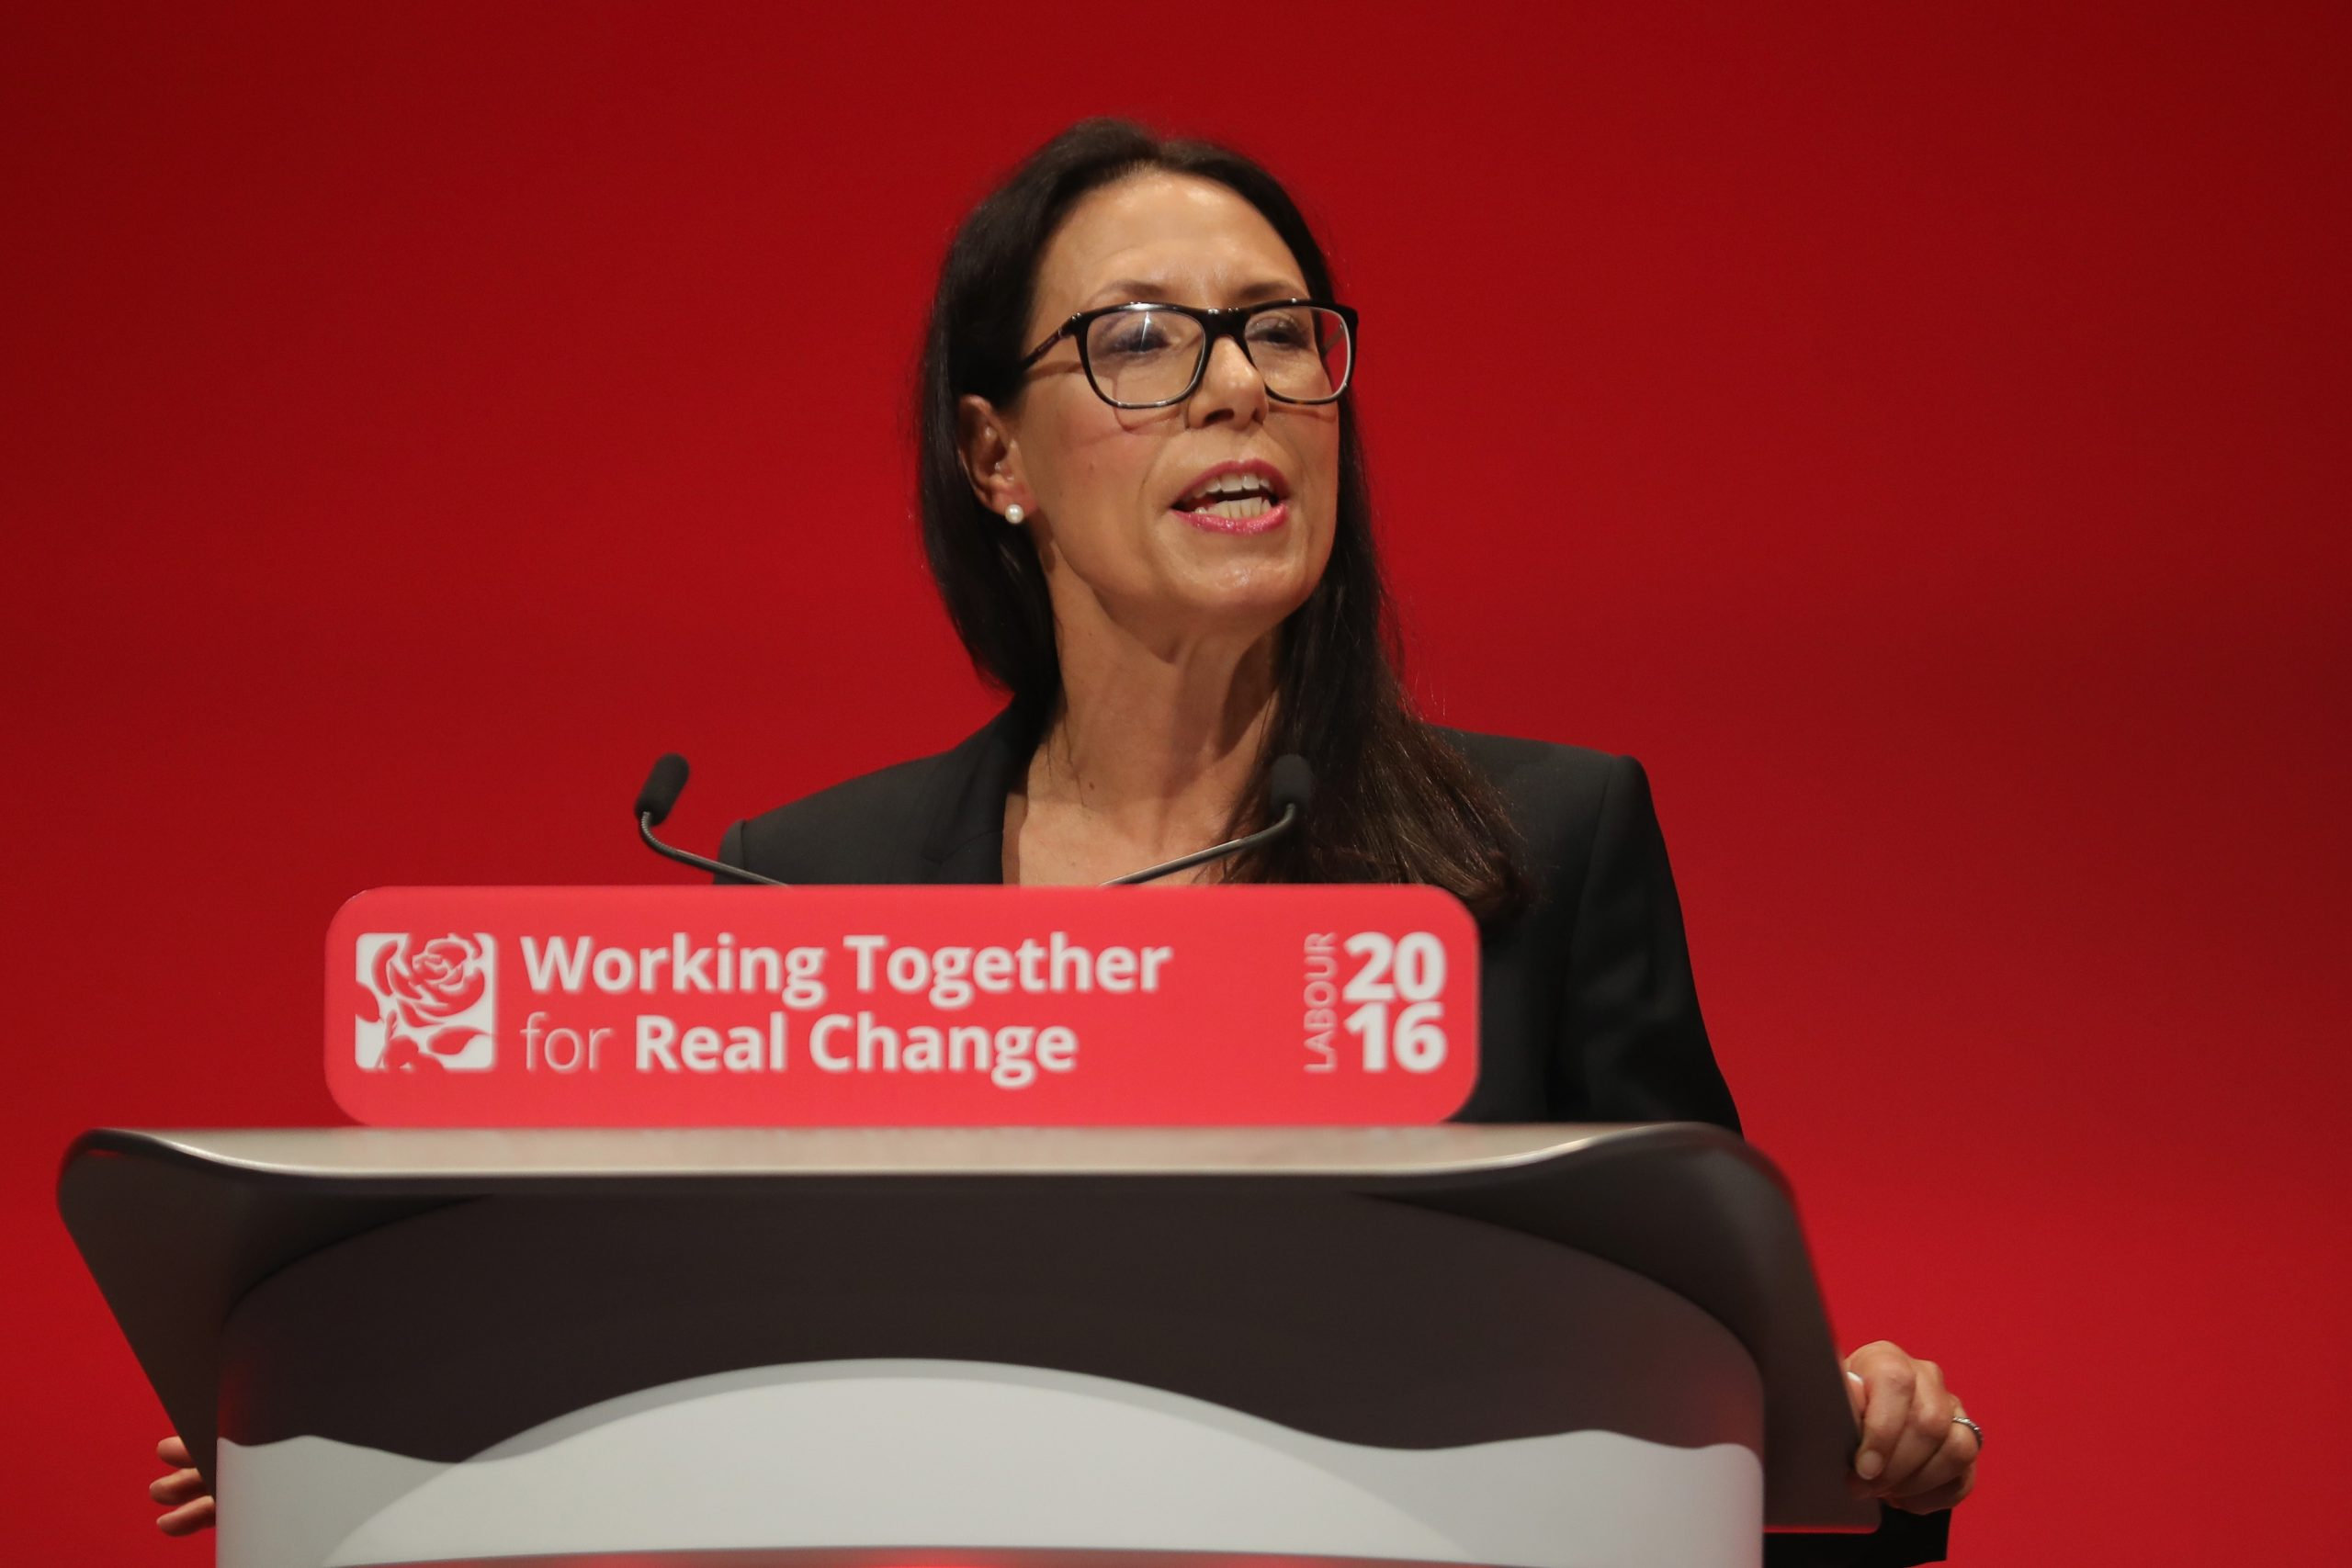 LIVERPOOL, ENGLAND - SEPTEMBER 26:  Debbie Abrahams. Shadow secretary of work and pensions, addresses delegates on the second day of the annual Labour party conference at the ACC on September 26, 2016 in Liverpool, England. Shadow Chancellor John McDonnell has stated that if in power a Labour government would create a 'manufacturing renaissance'. Labour would also support traditional manufacturing and industry with government 'intervention' if needed. Mr McDonnell has also rejected claims that the party is anti-enterprise.  (Photo by Christopher Furlong/Getty Images)